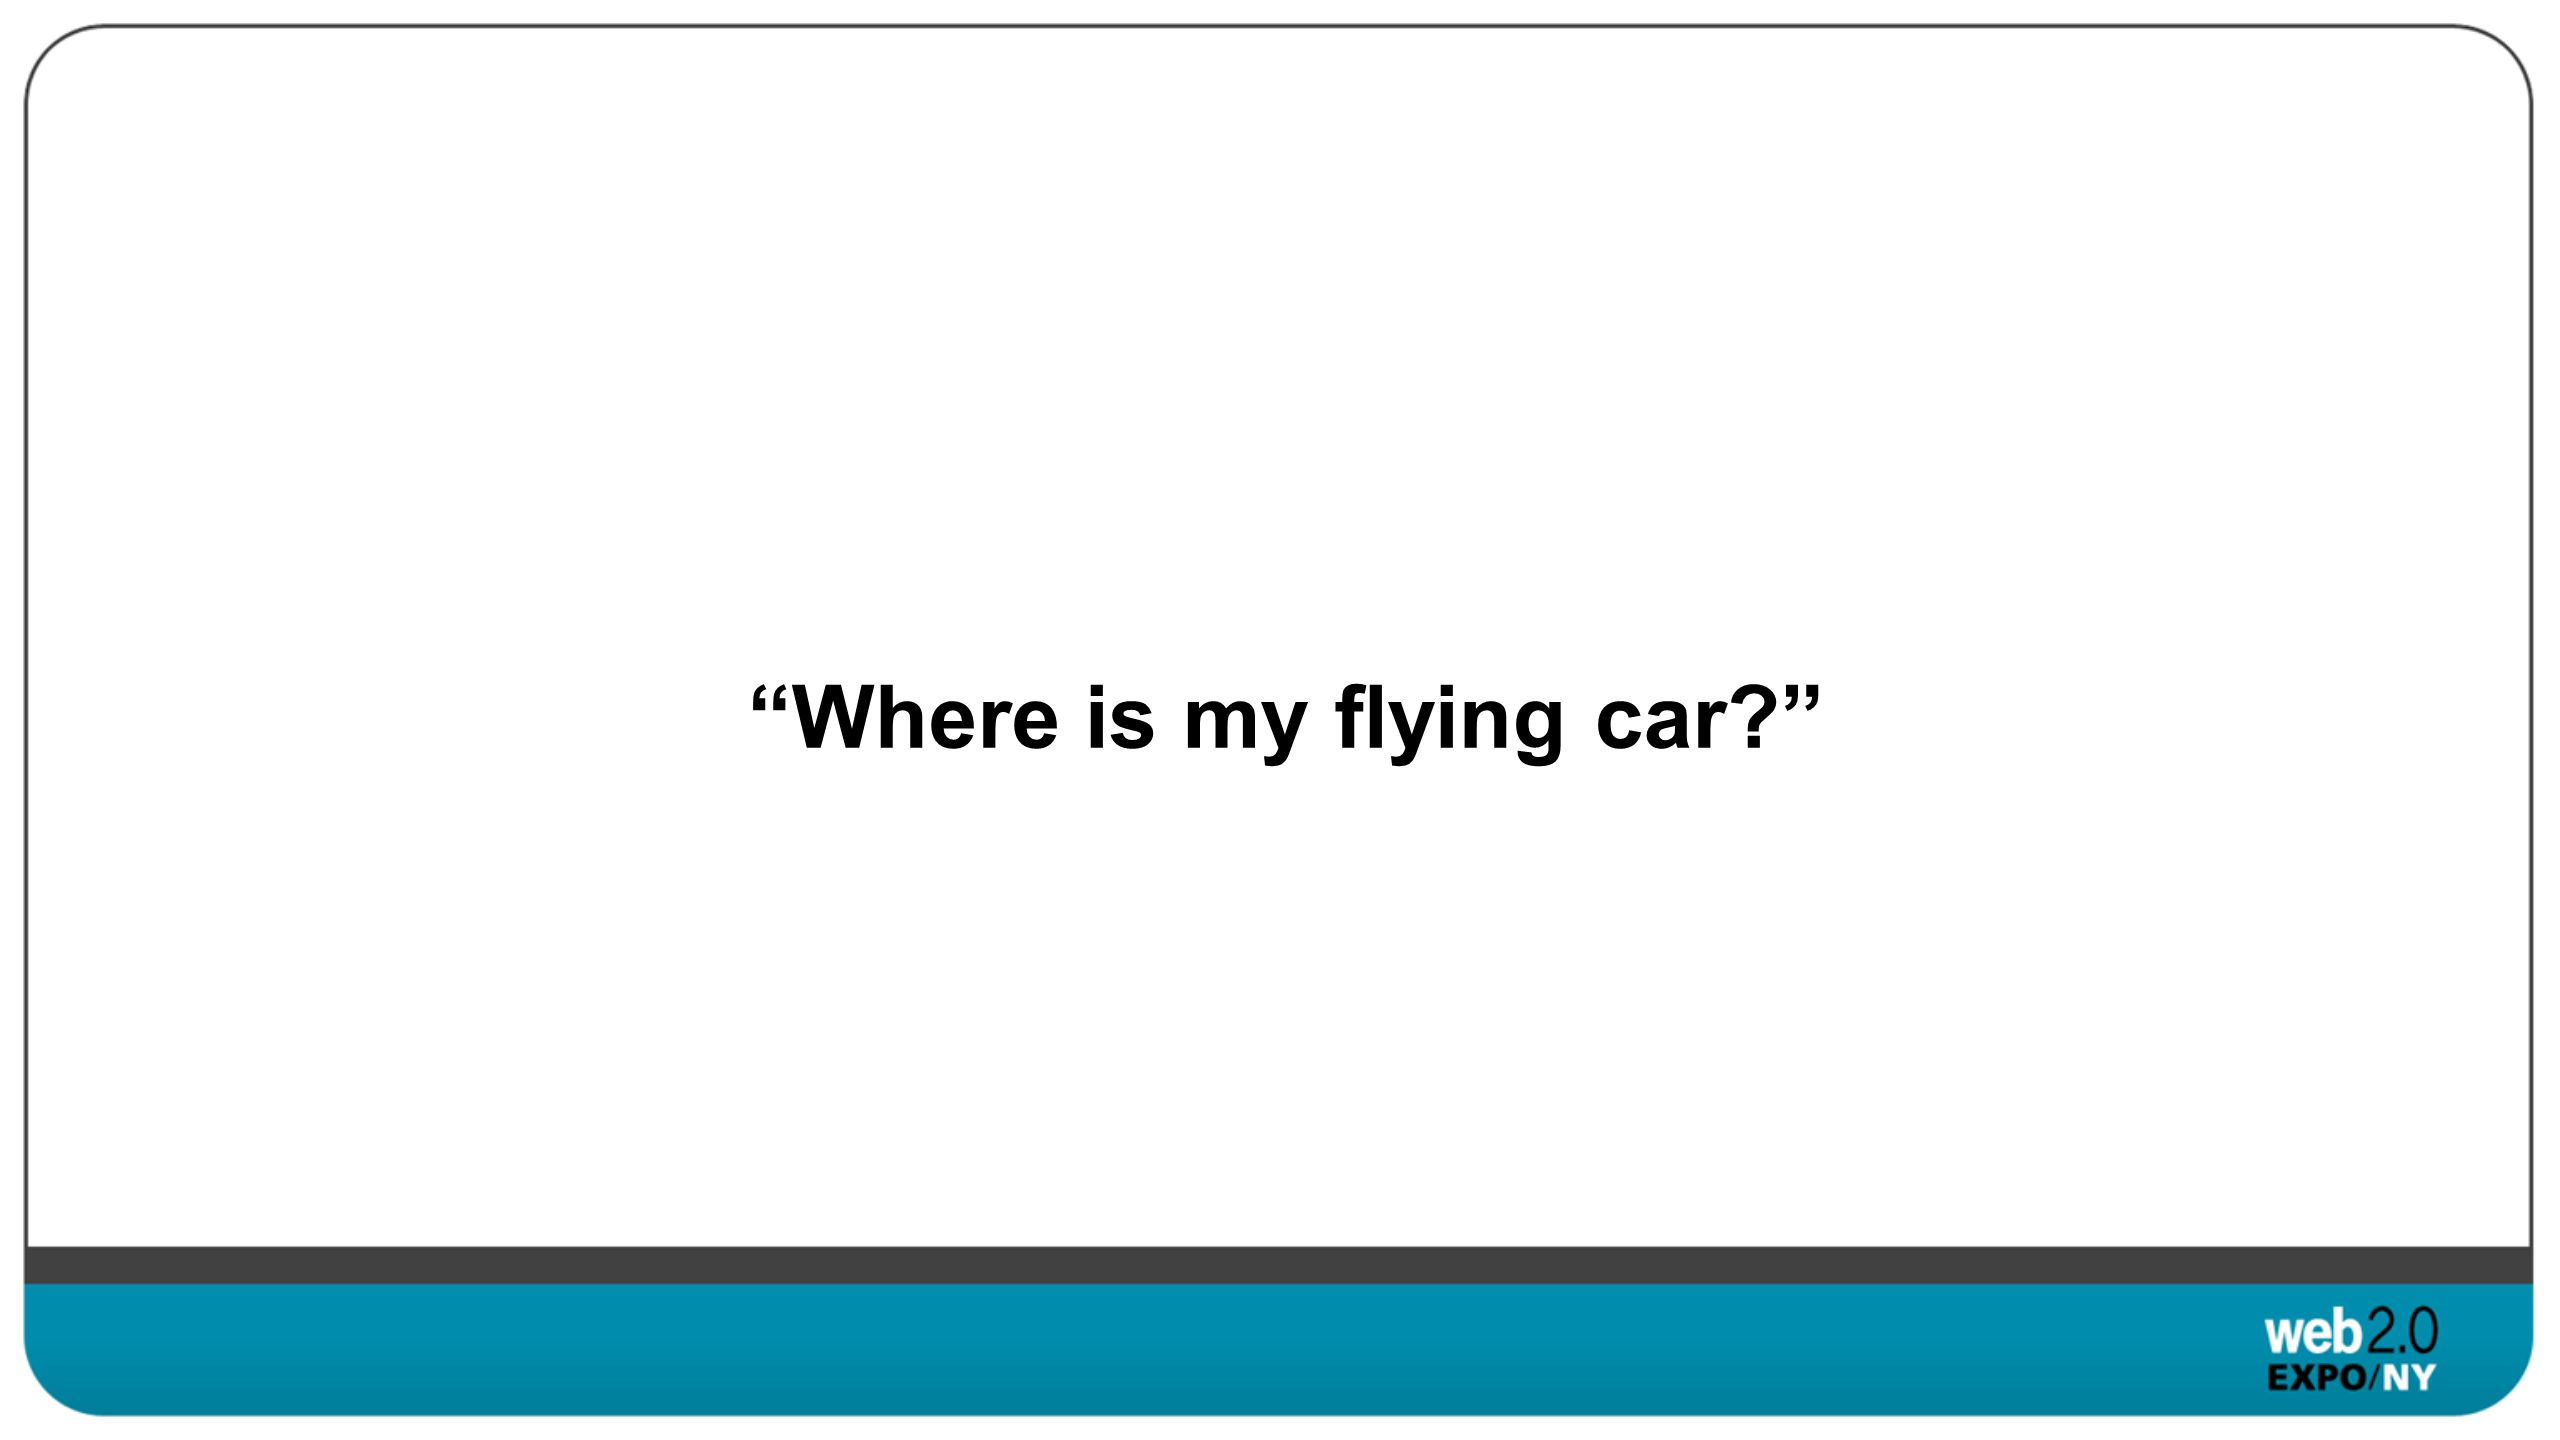 Where is my flying car